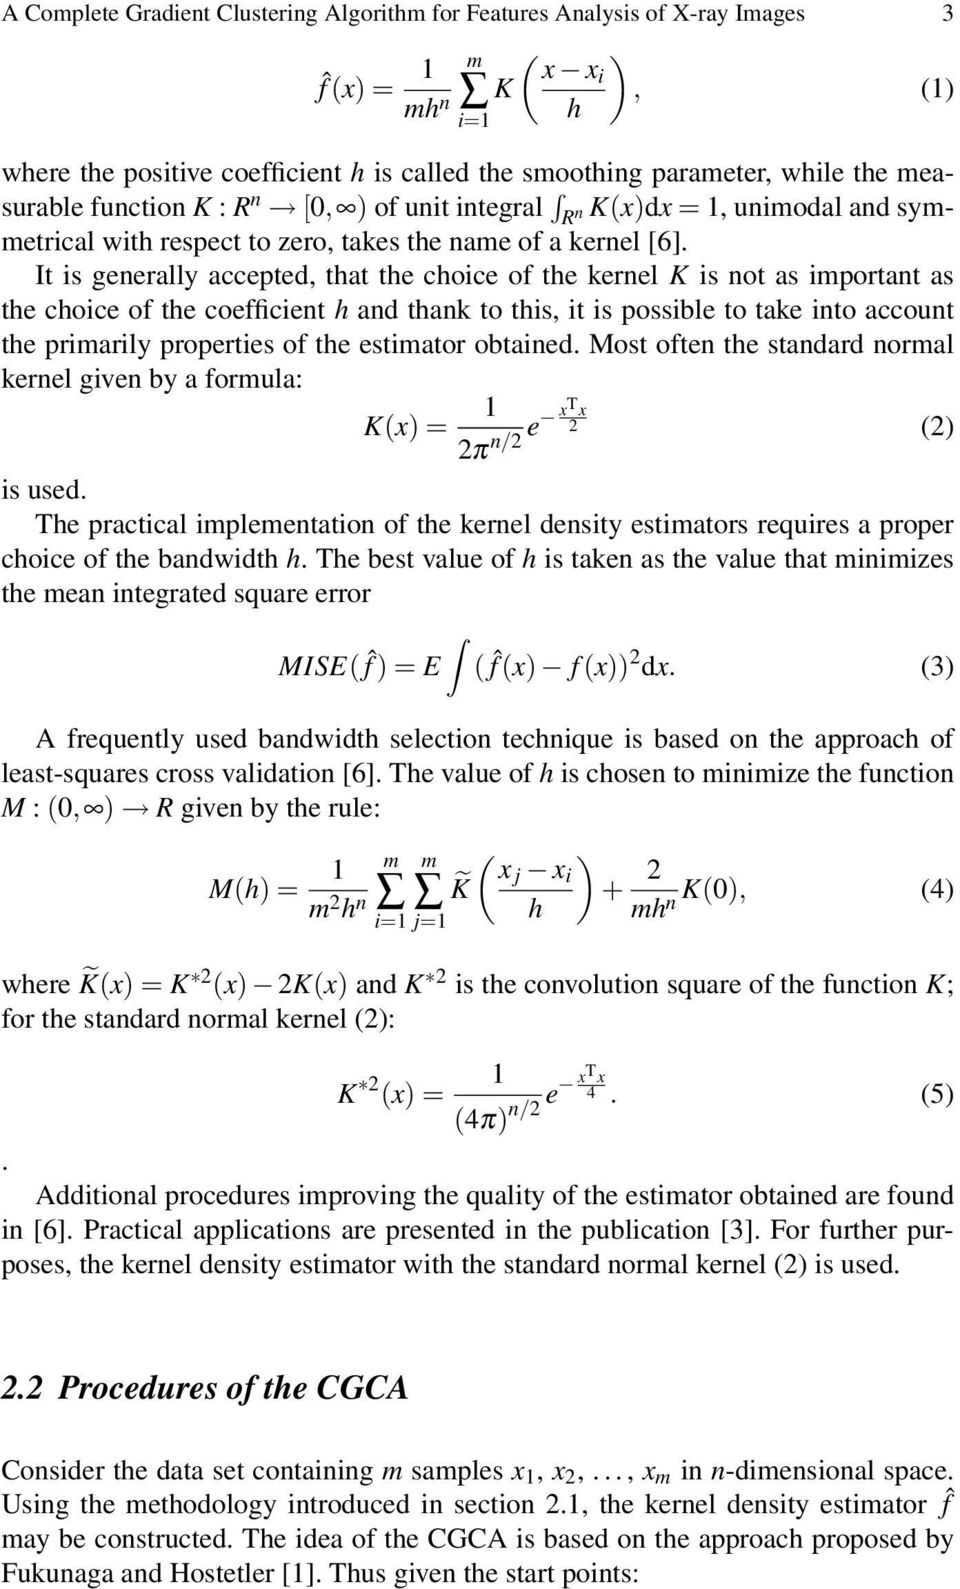 It is generally accepted, that the choice of the kernel K is not as important as the choice of the coefficient h and thank to this, it is possible to take into account the primarily properties of the